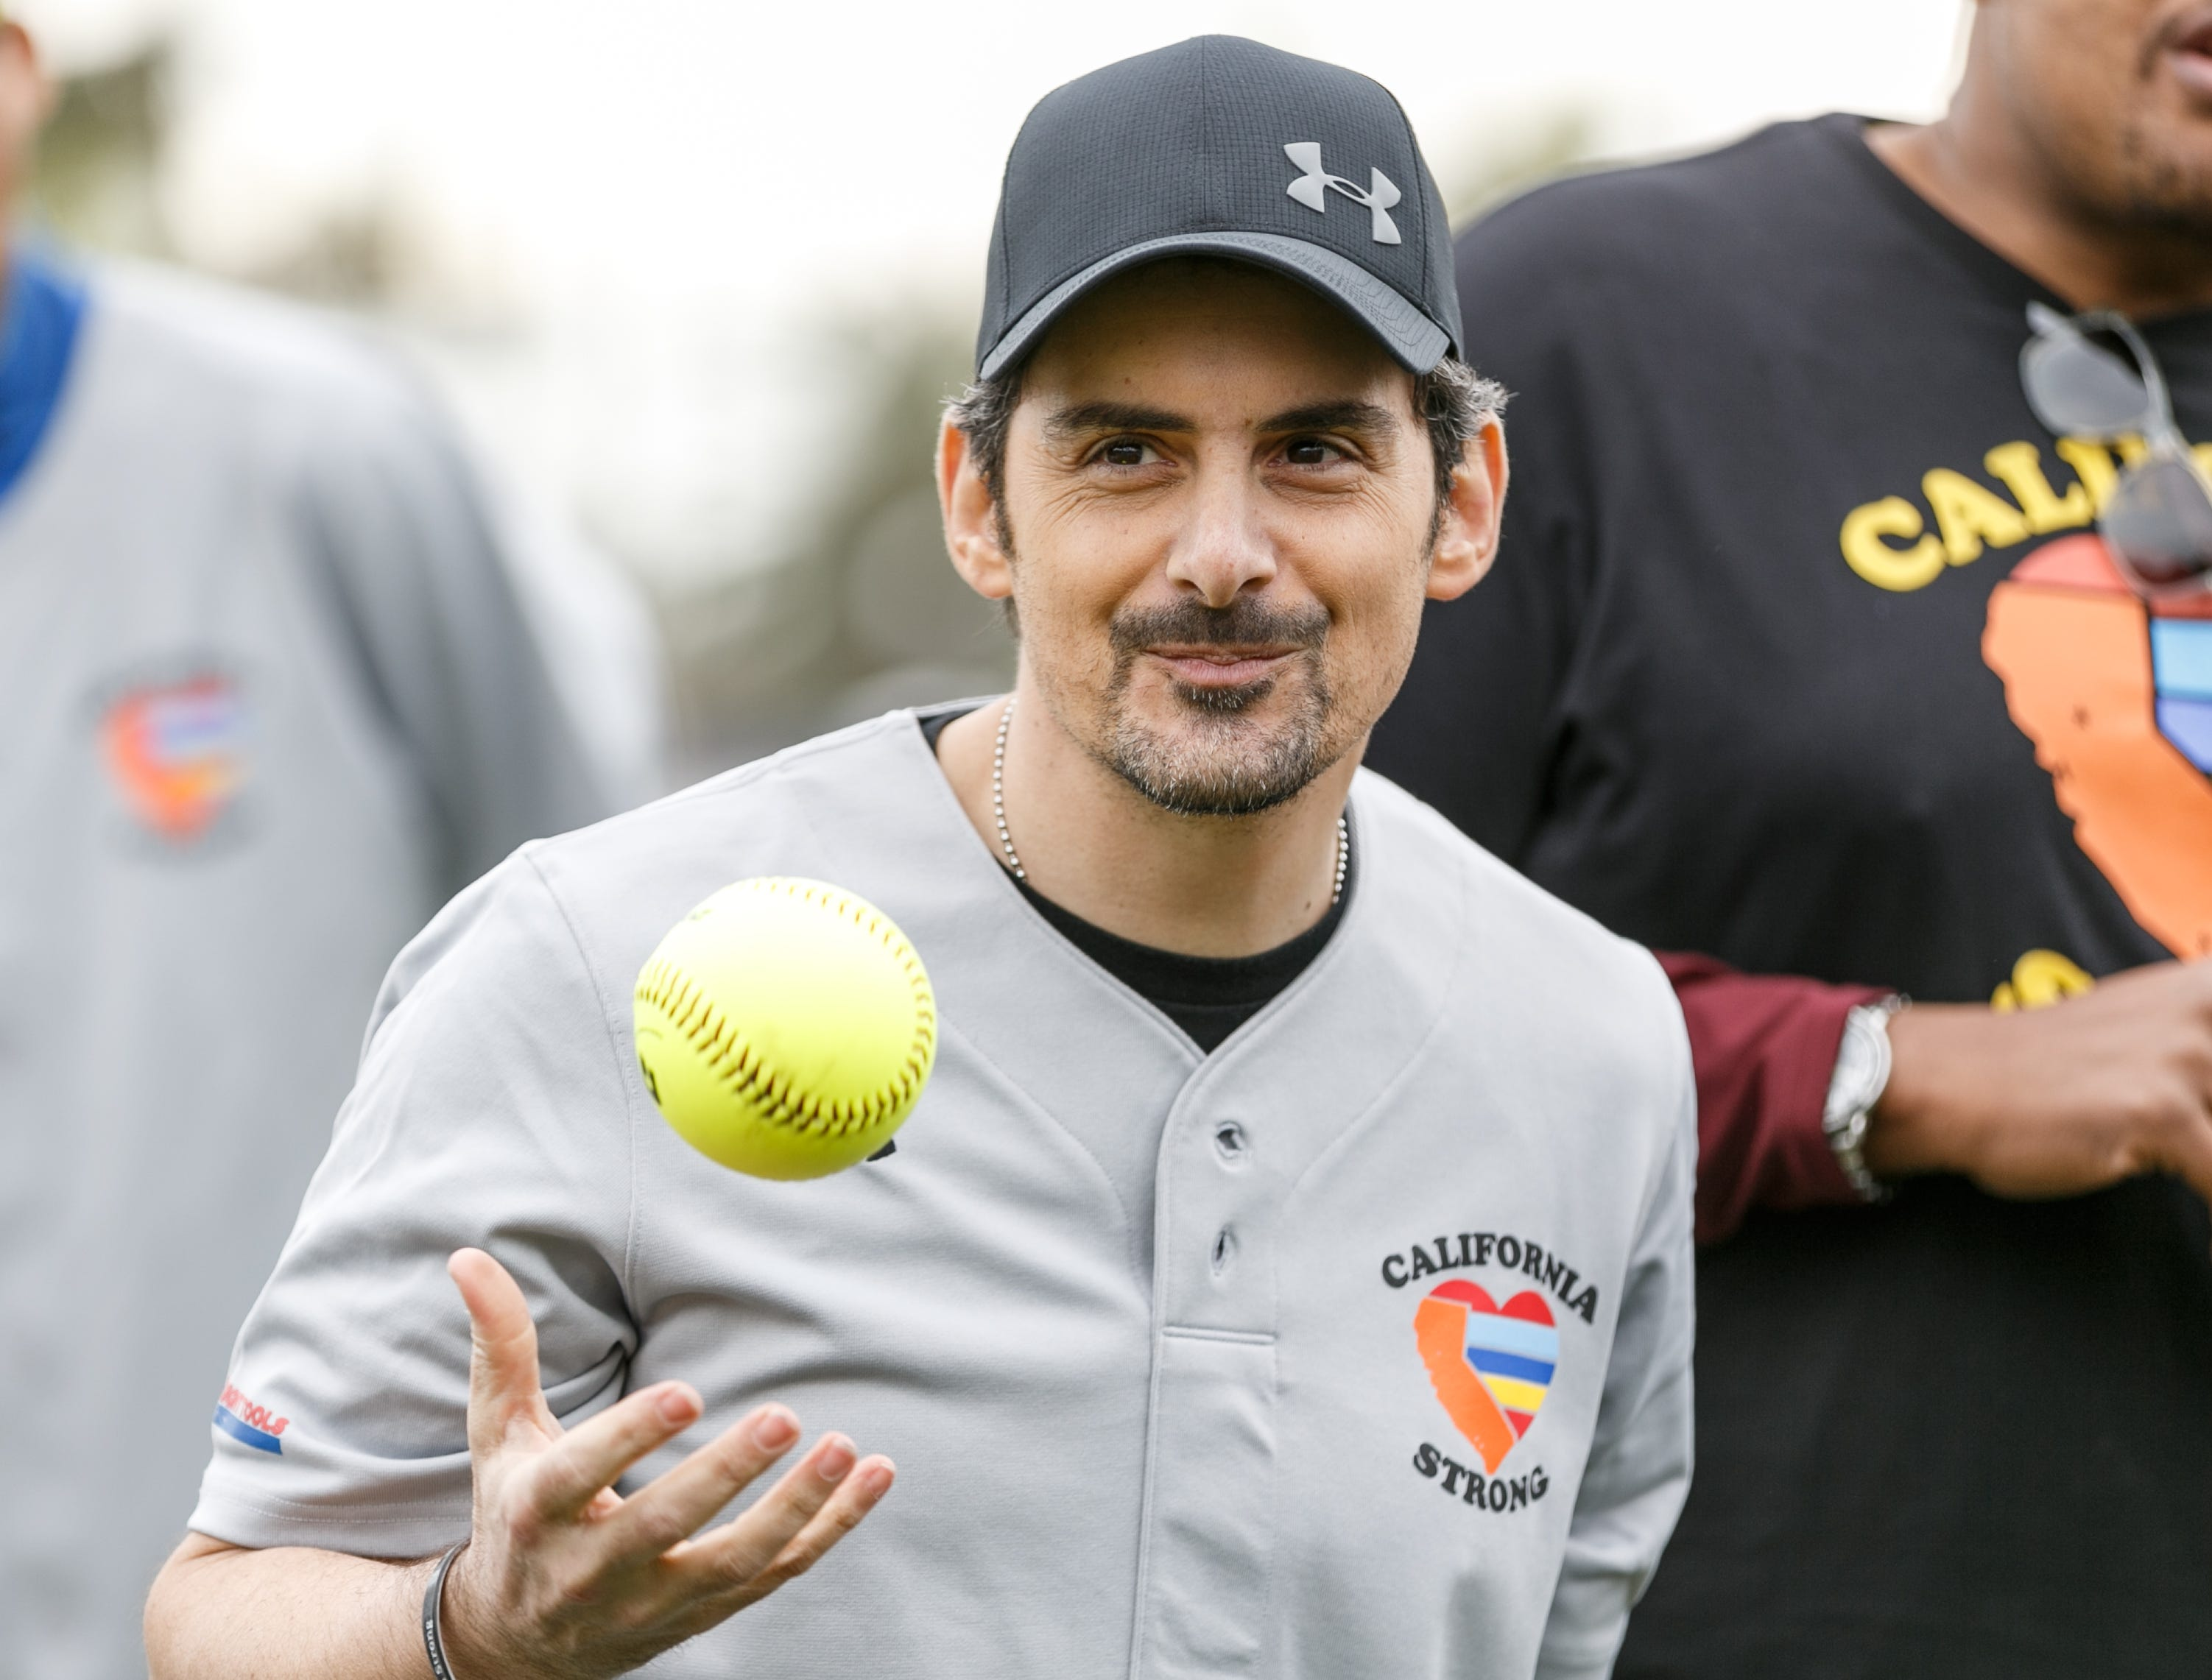 "MALIBU, CALIFORNIA - JANUARY 13:  Brad Paisley attends a charity softball game to benefit ""California Strong"" at Pepperdine University on January 13, 2019 in Malibu, California. (Photo by Rich Polk/Getty Images for California Strong) ORG XMIT: 775276797 ORIG FILE ID: 1093819478"